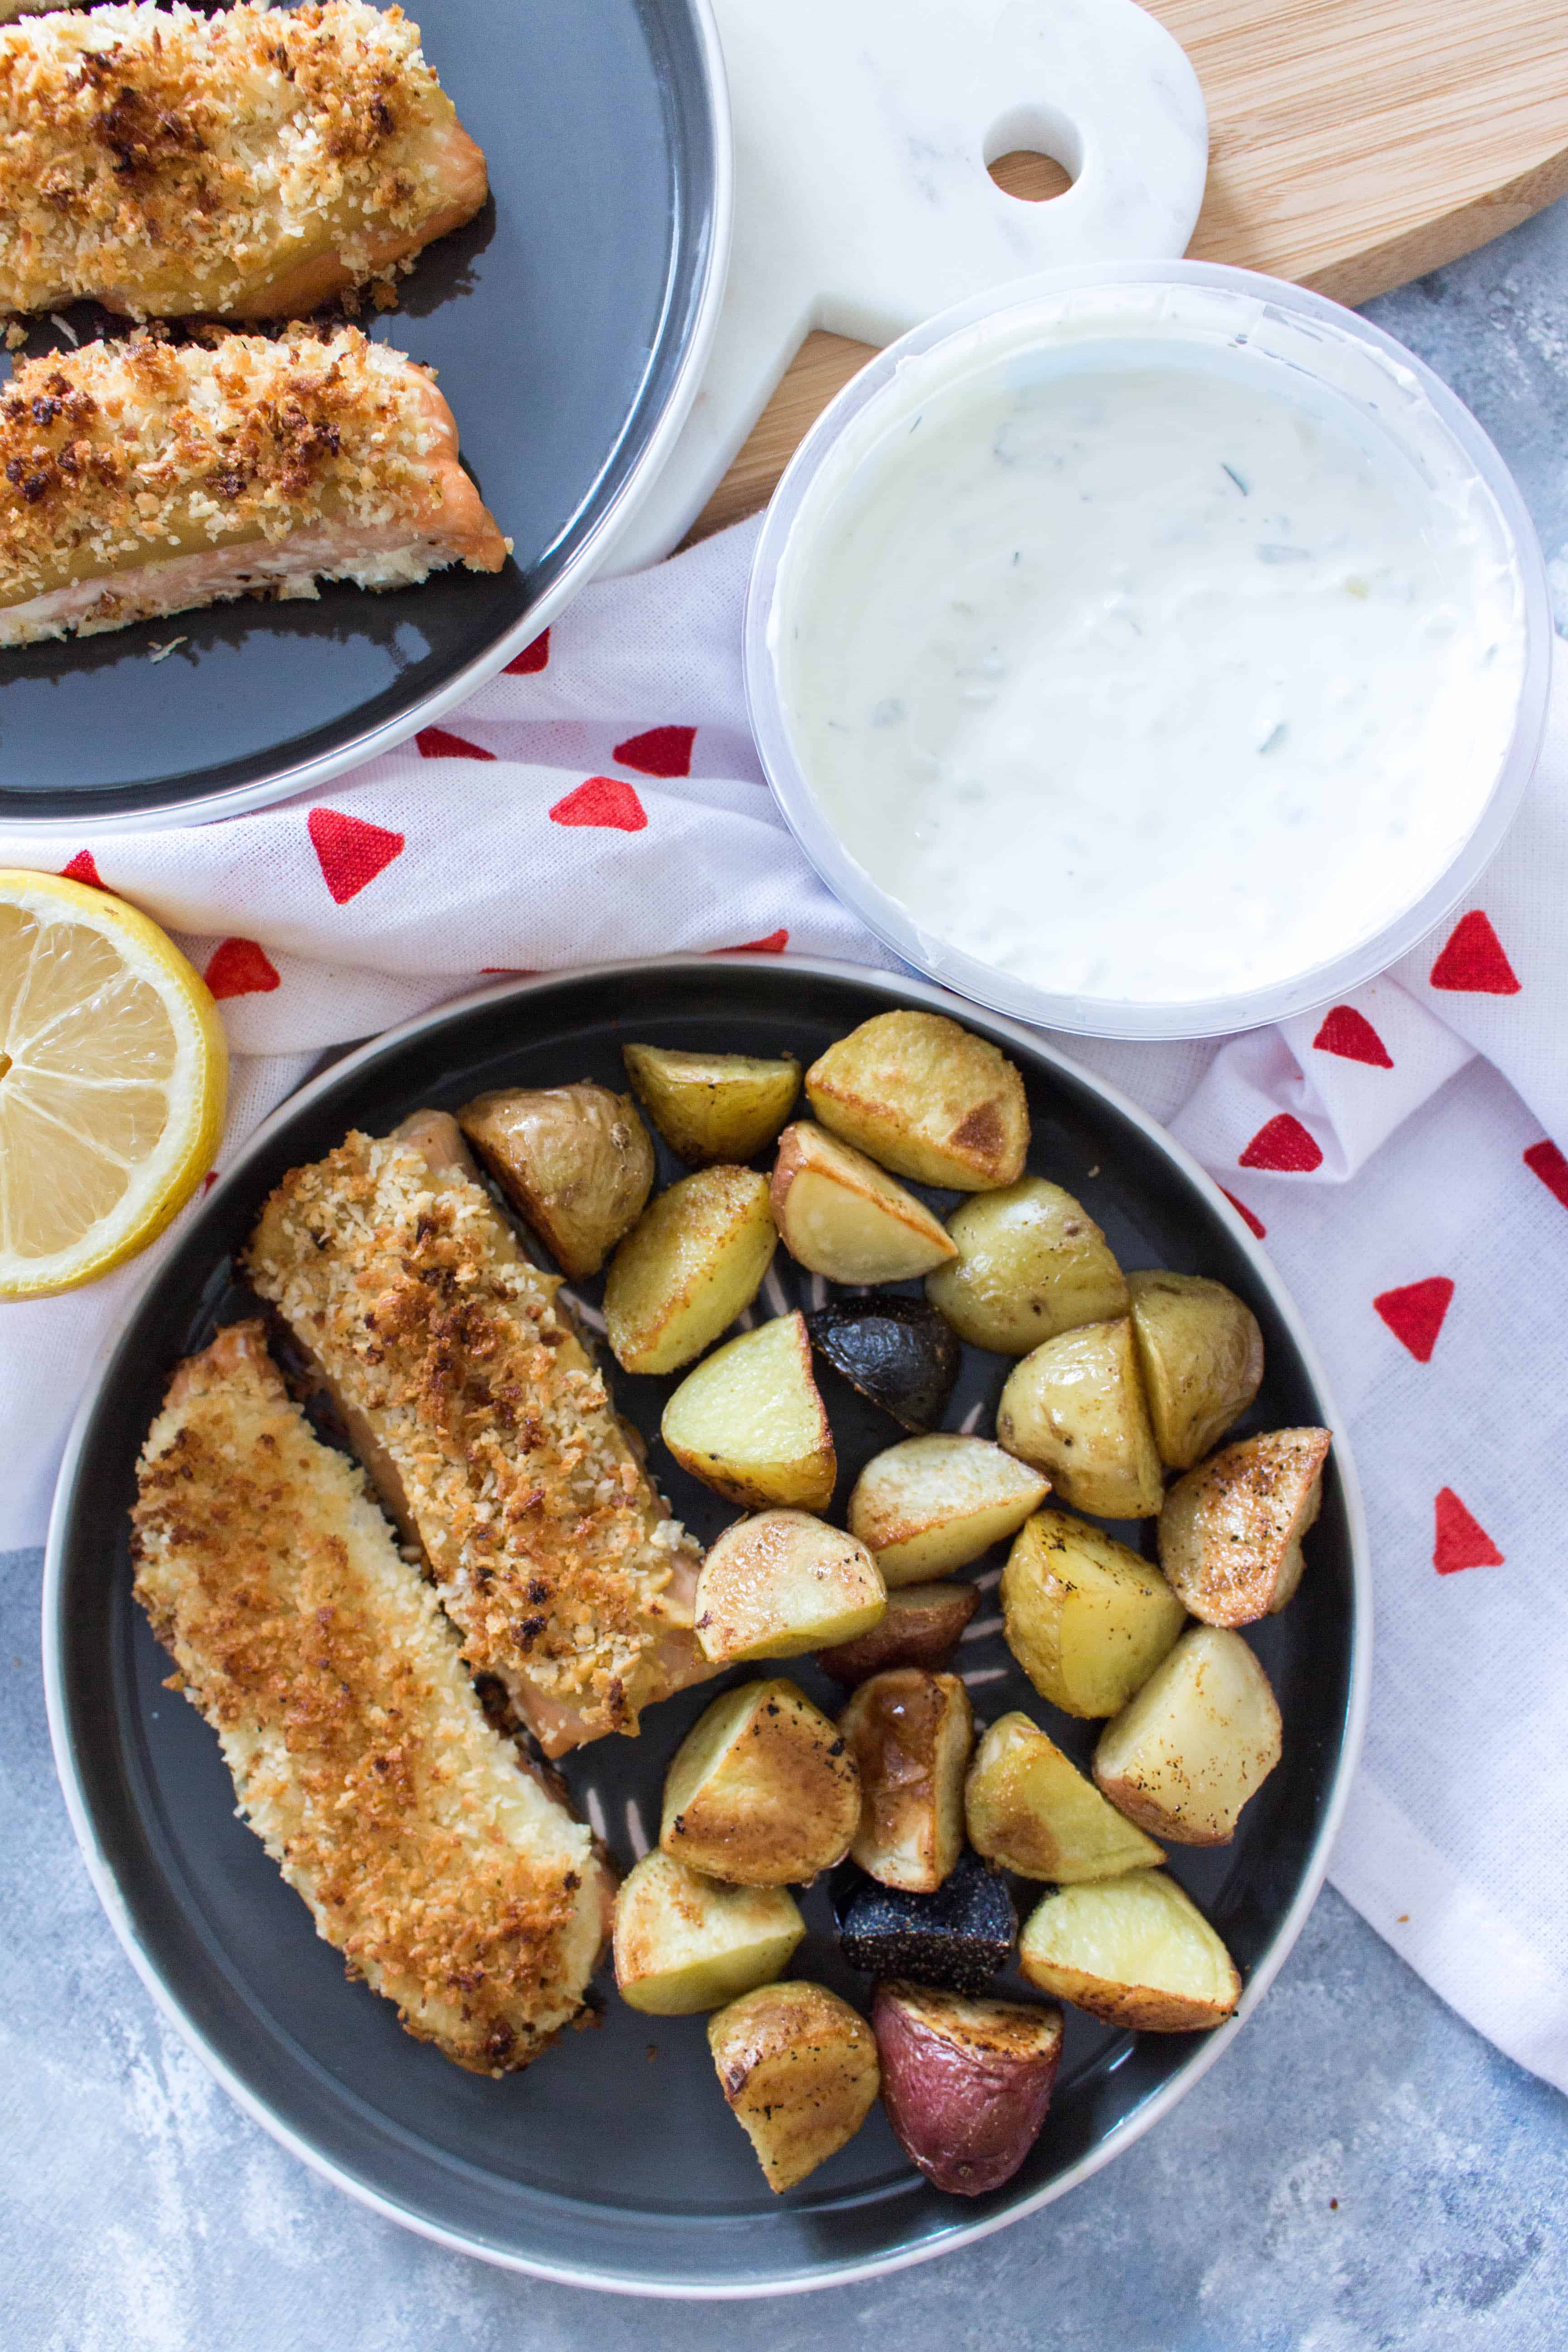 This delicious Tzatziki Crusted Salmon with Panko is baked to perfection! This Tzatziki Crusted Salmon is perfect for a healthy weeknight dinner and lunch meal prep with the leftovers.